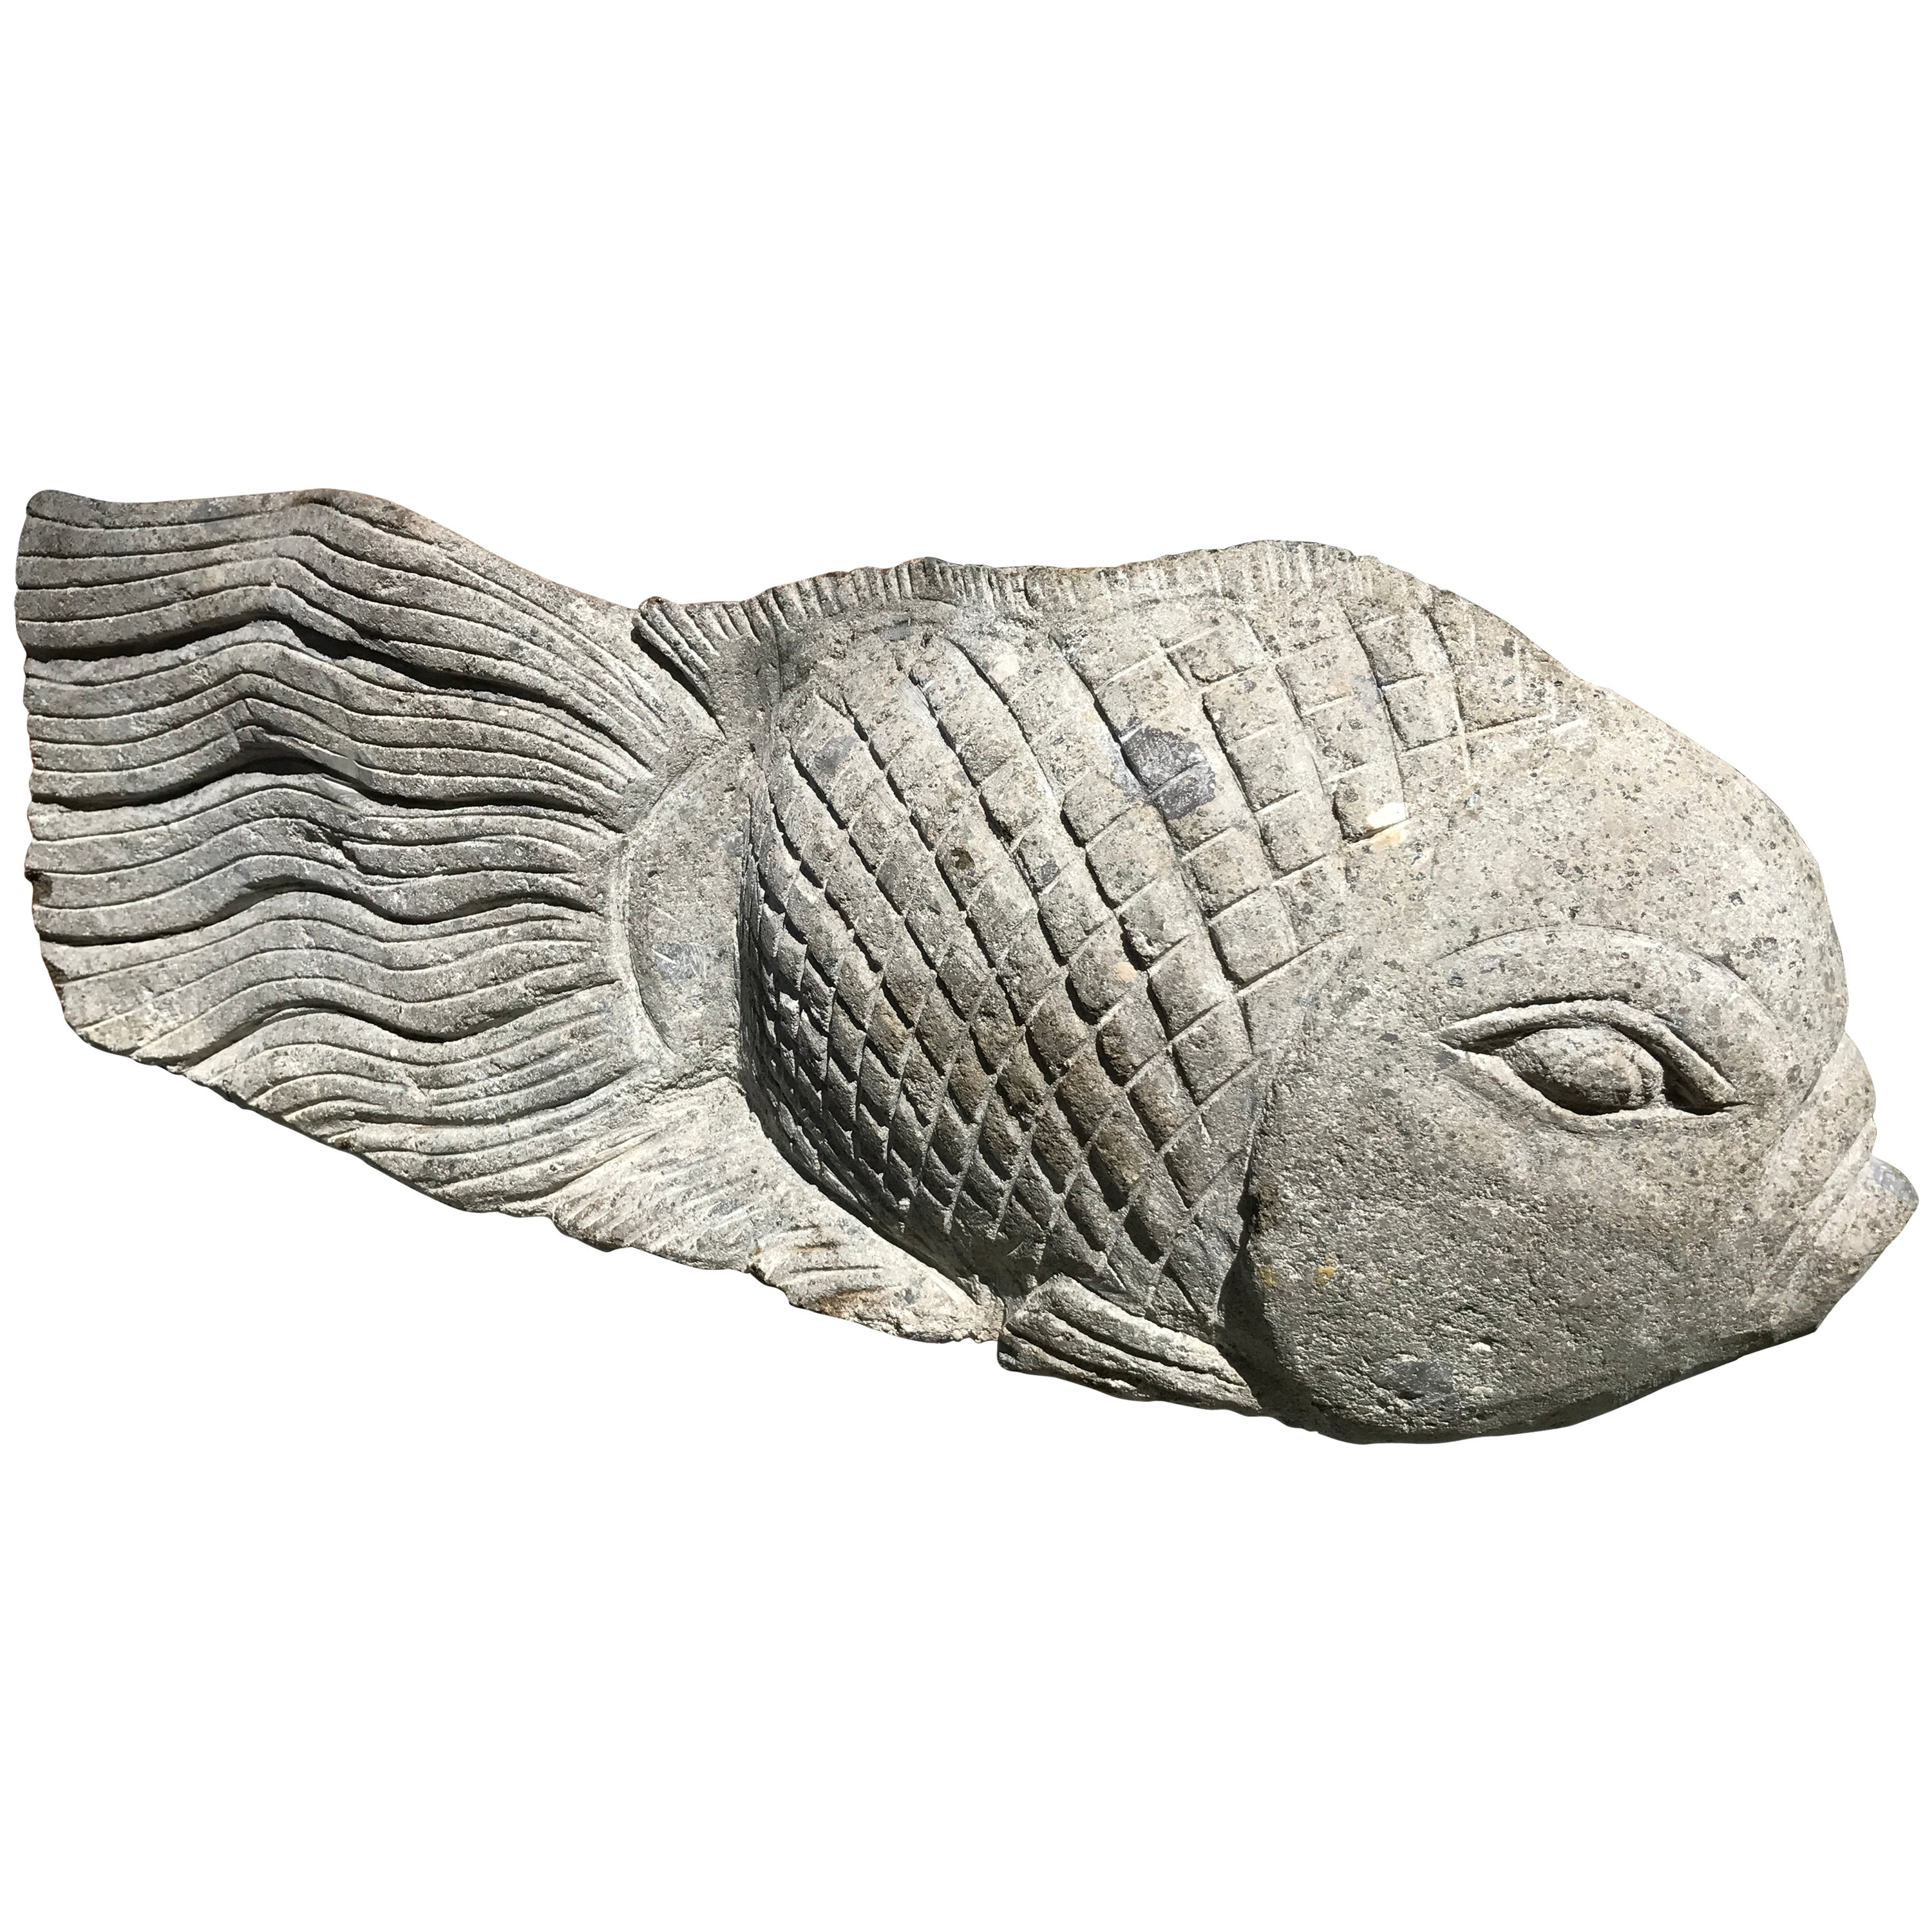 Big Fish Sculpture for Home, Garden, or Nautical Fishermen's Themed Space